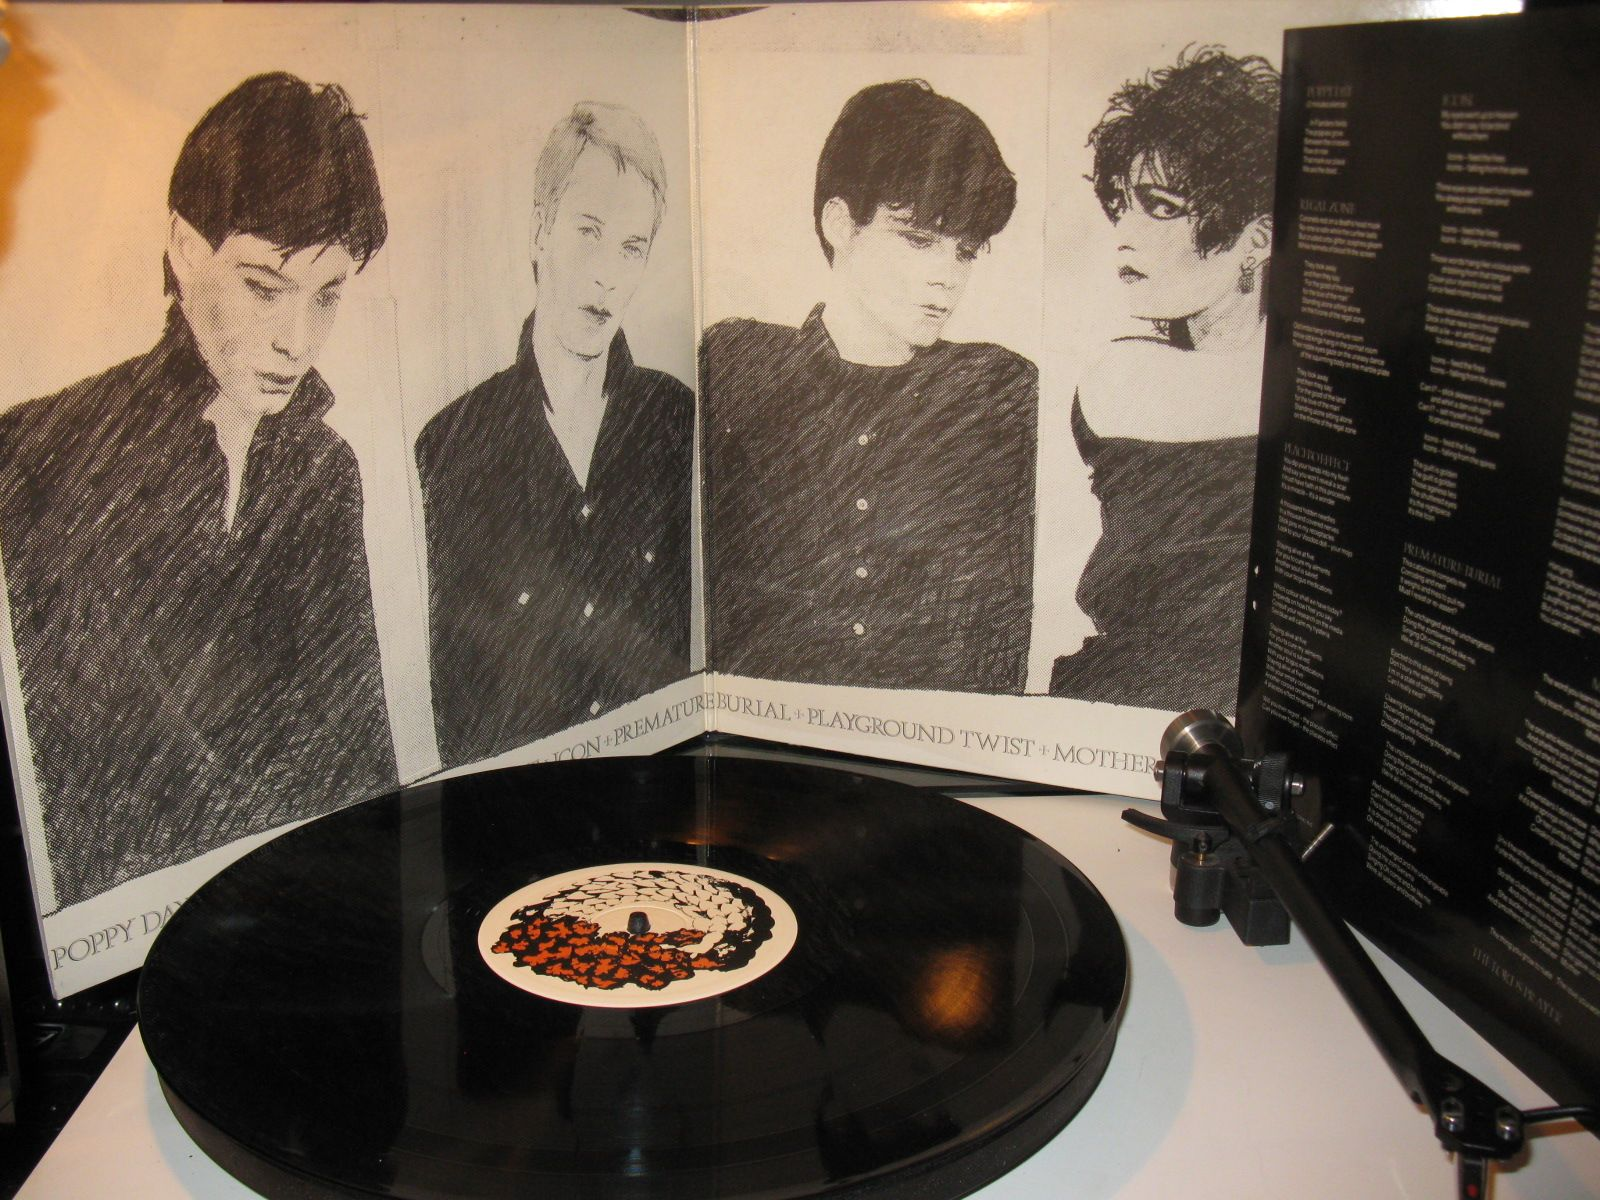 Siouxsie and the banshees Join Hands UK album